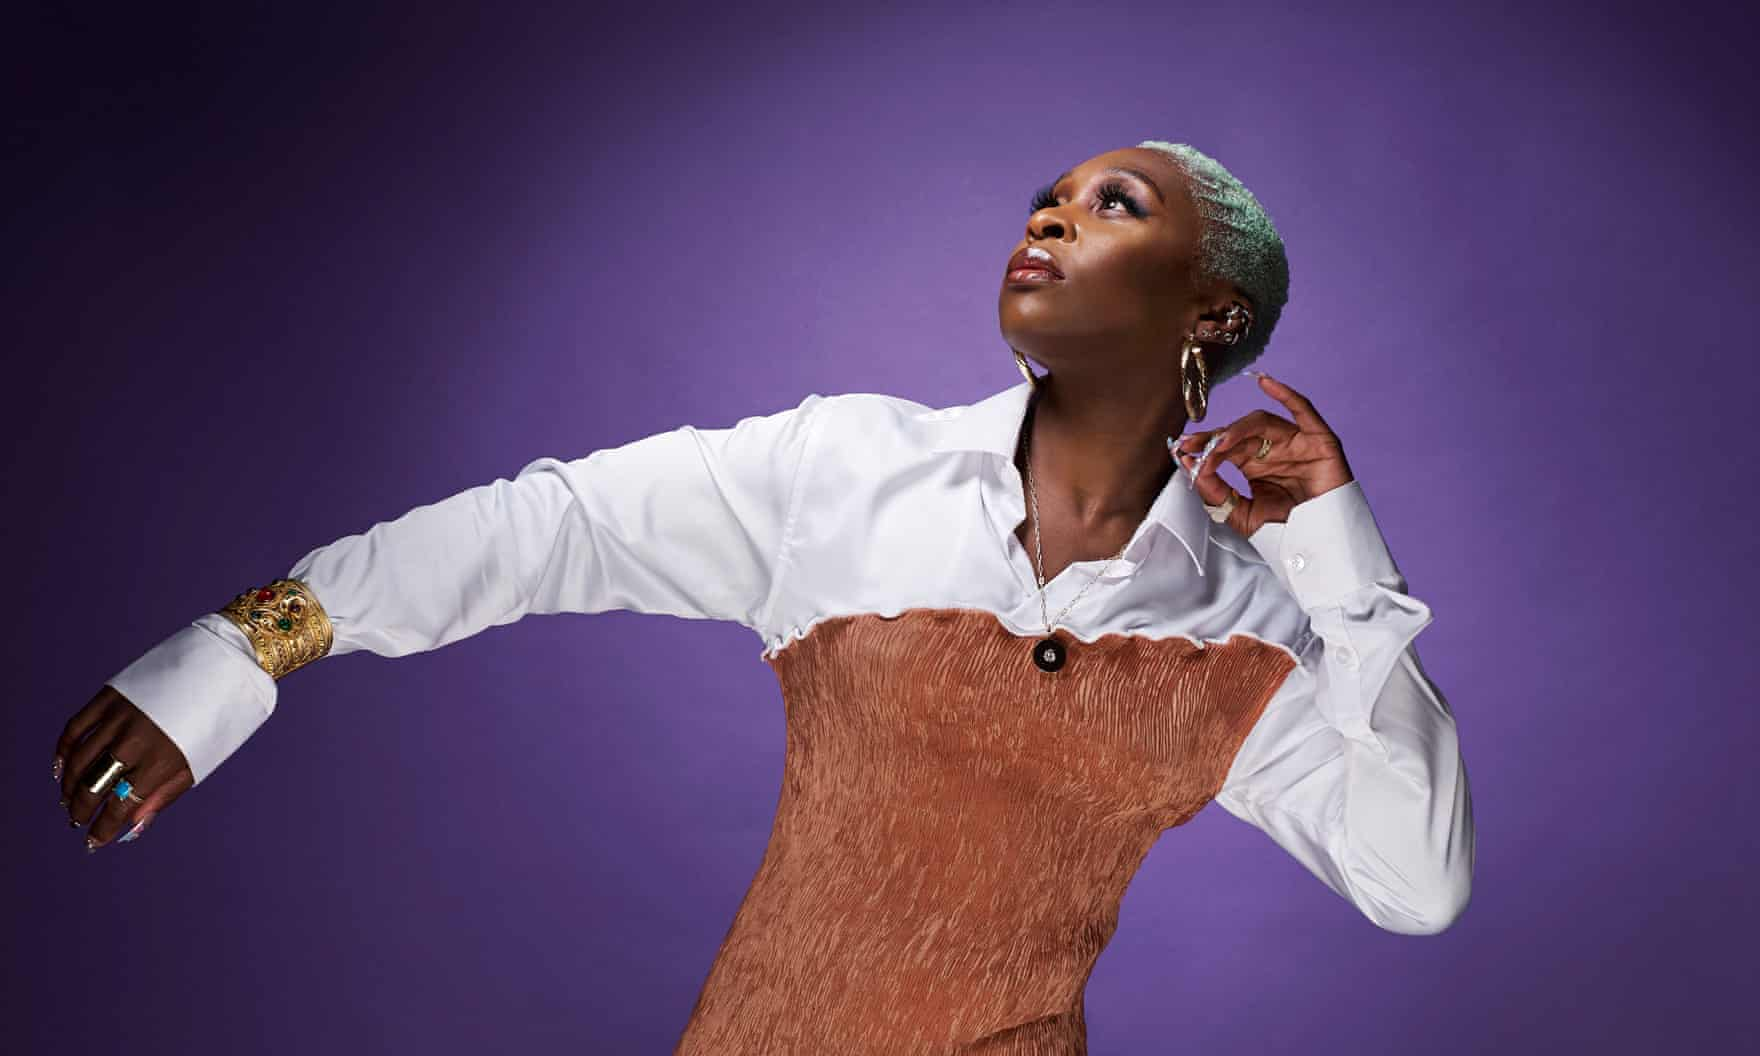 All You Need To Know About Cynthia Erivo, The British-Nigerian Actress Taking Over The World